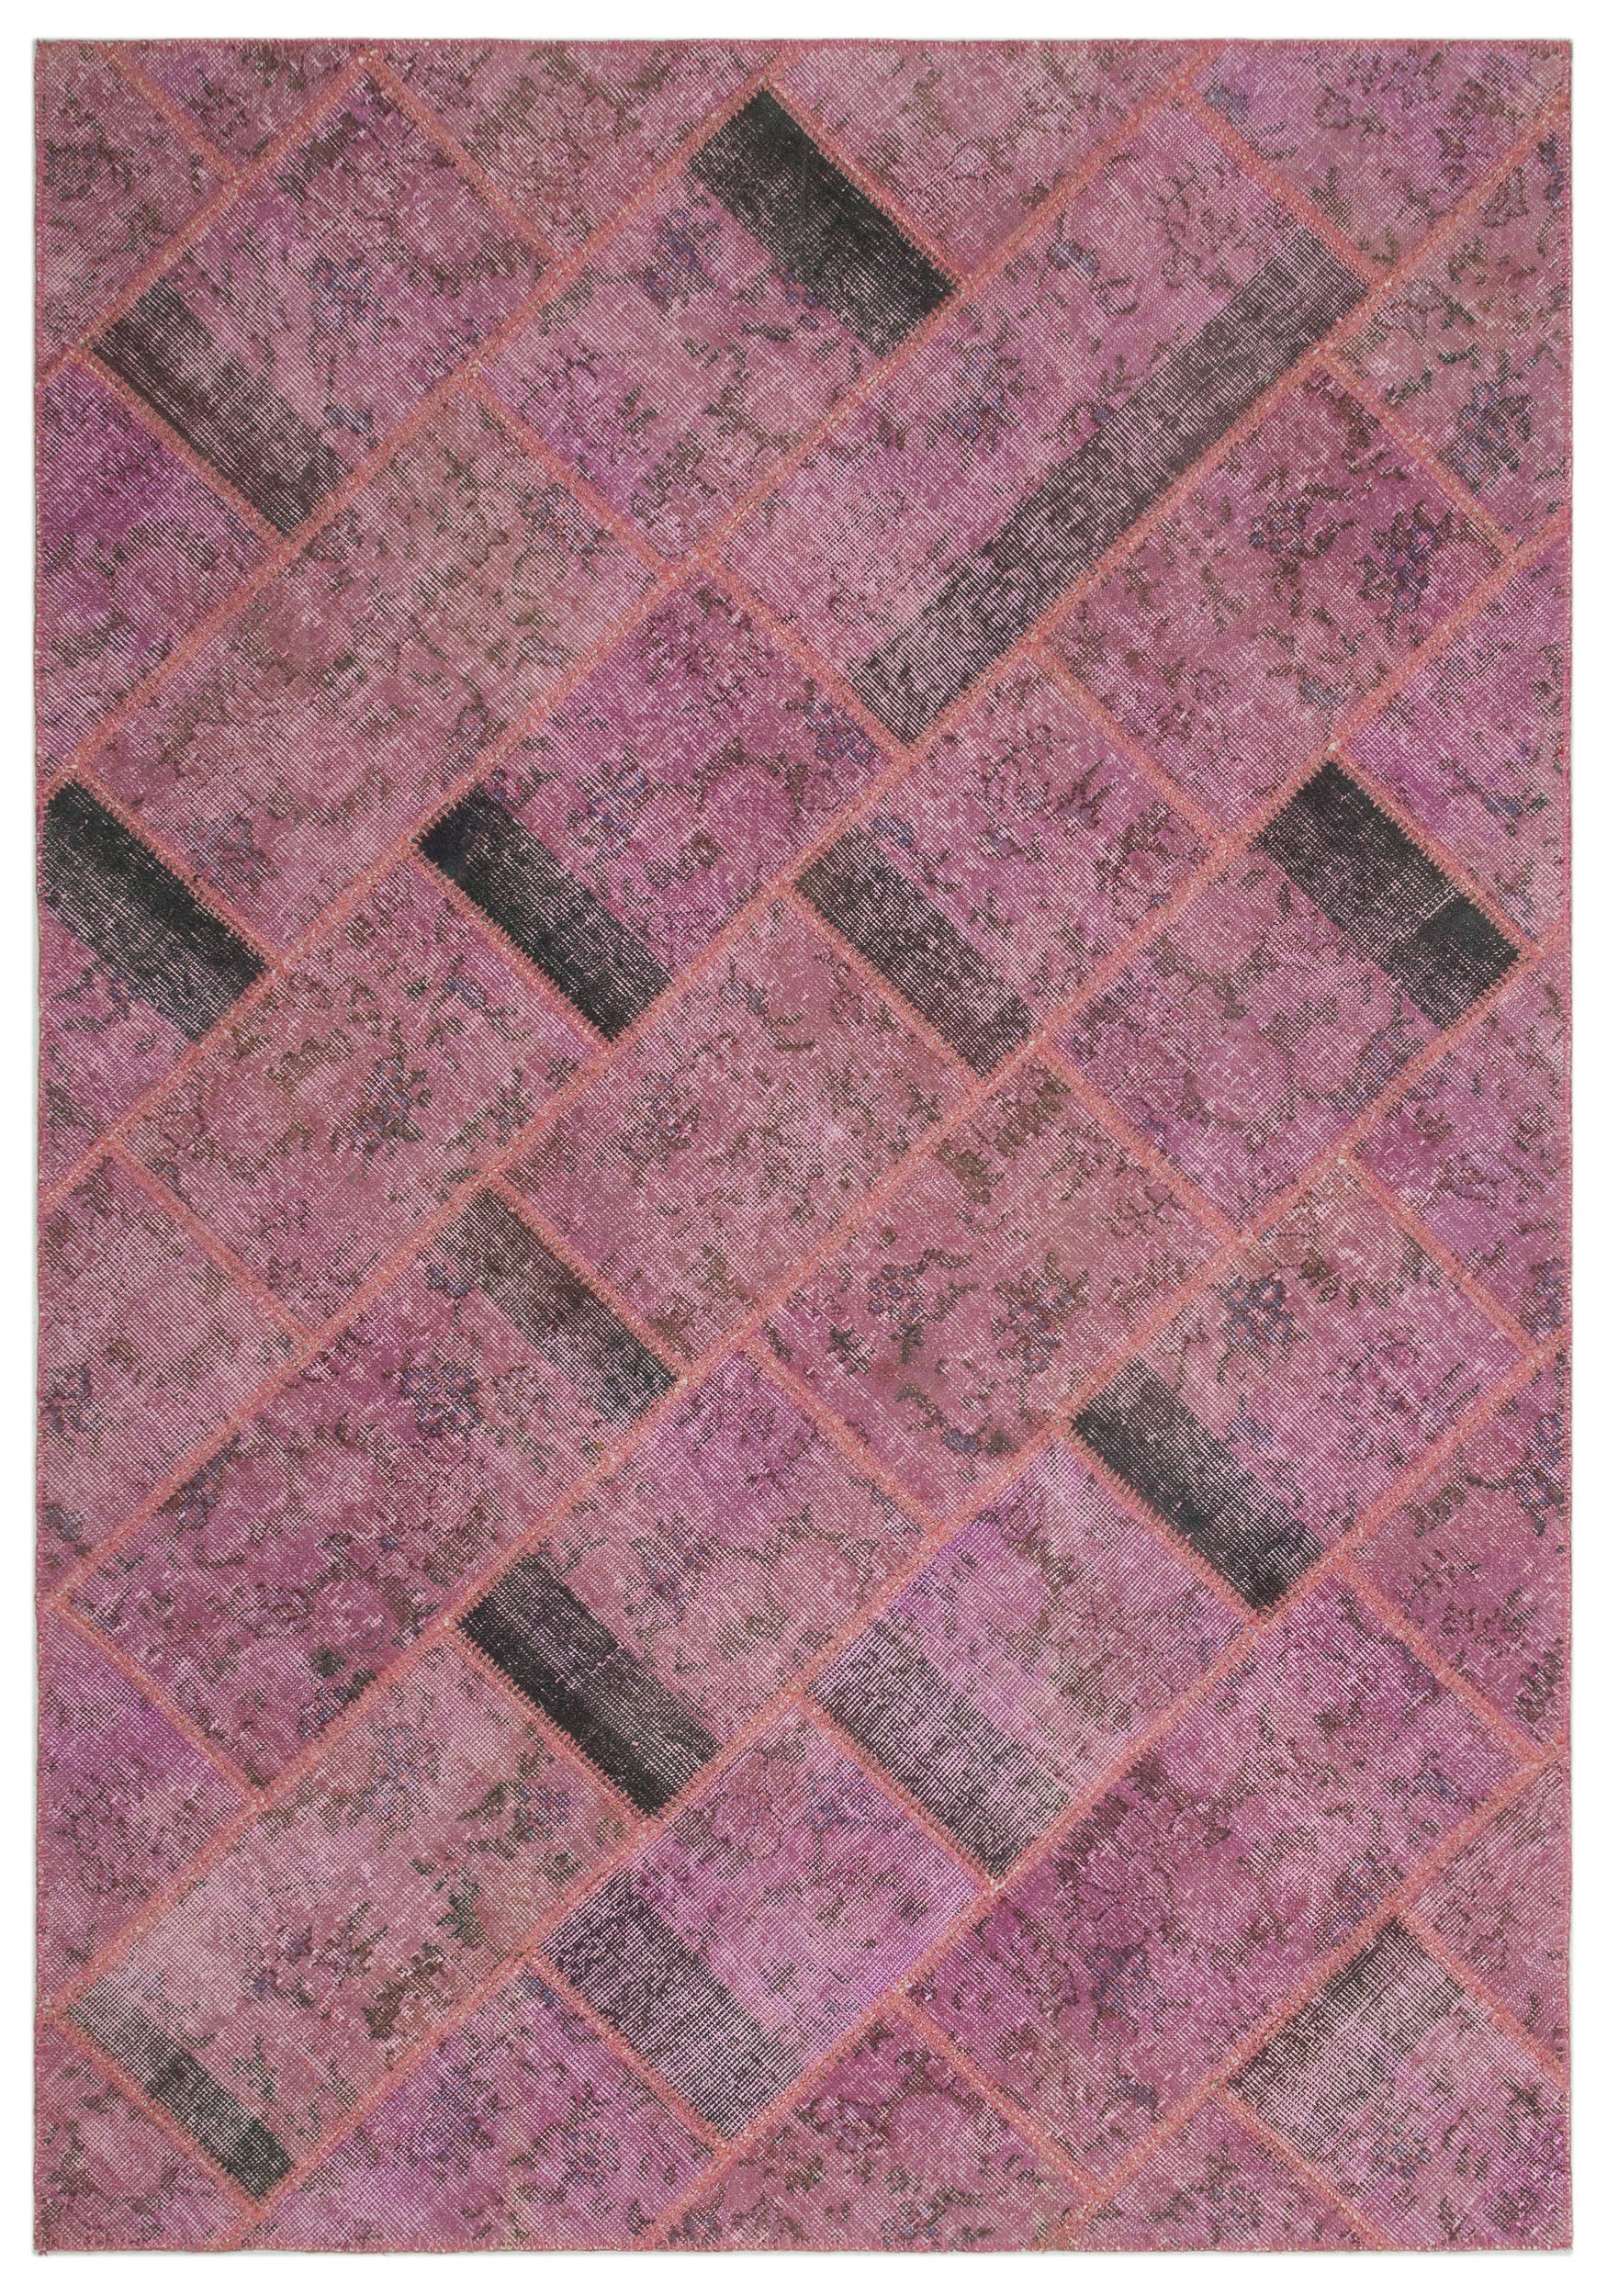 Pink Over Dyed Patchwork Unique Rug 5'3'' x 7'8'' ft 160 x 233 cm